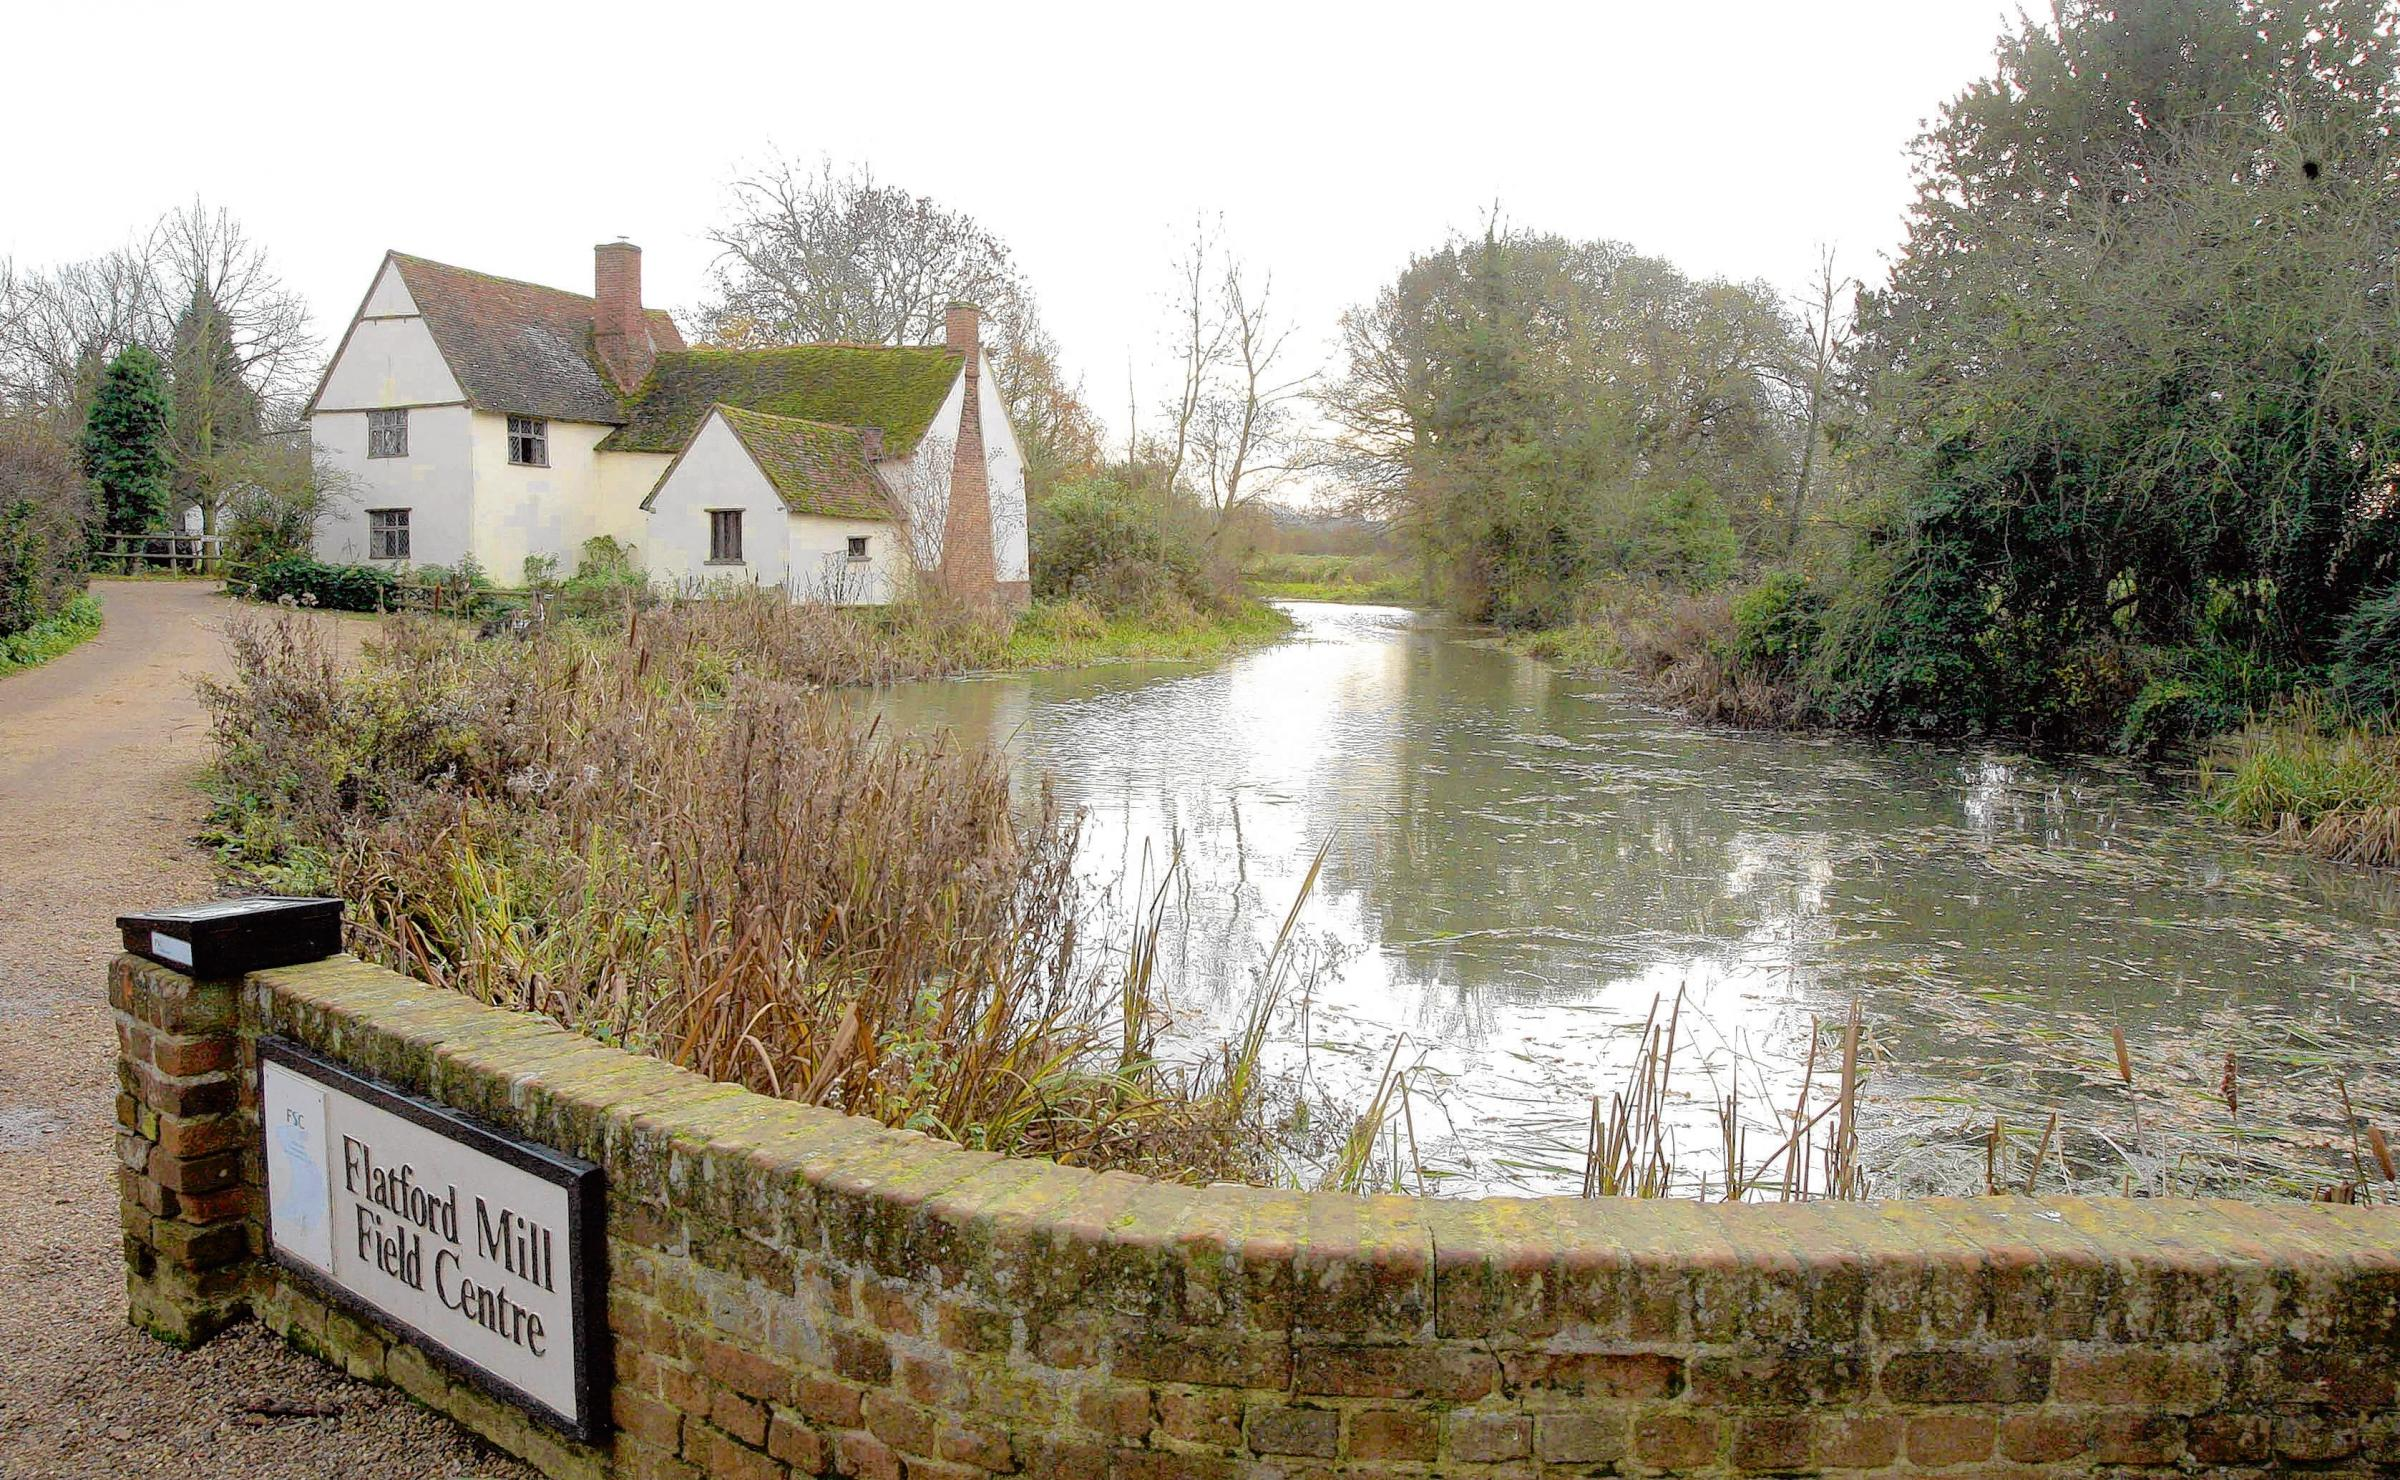 Flatford Mill named as a great green space